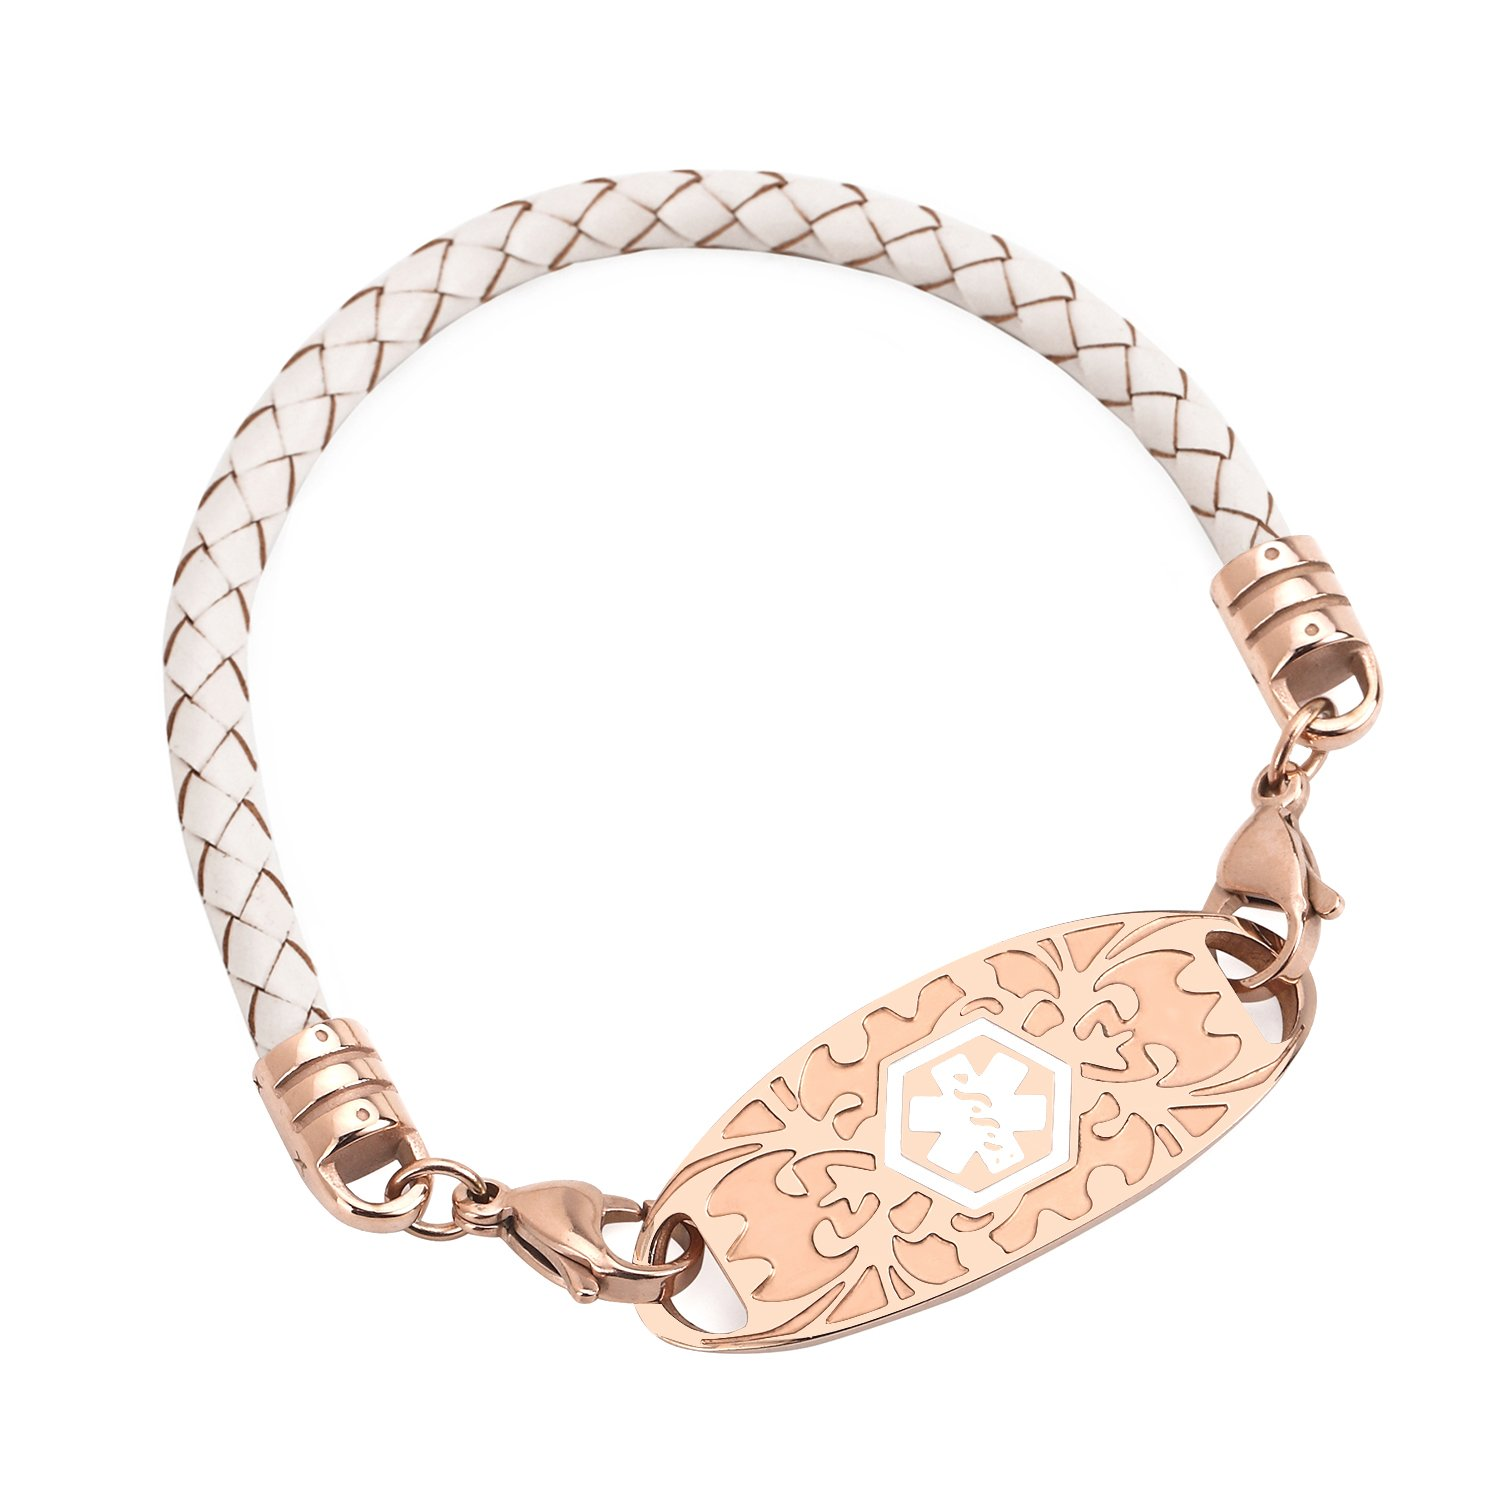 BAIYI Rose Gold Medical Alert ID Tags Bracelets White Braided Leather Bangle 6.5 in